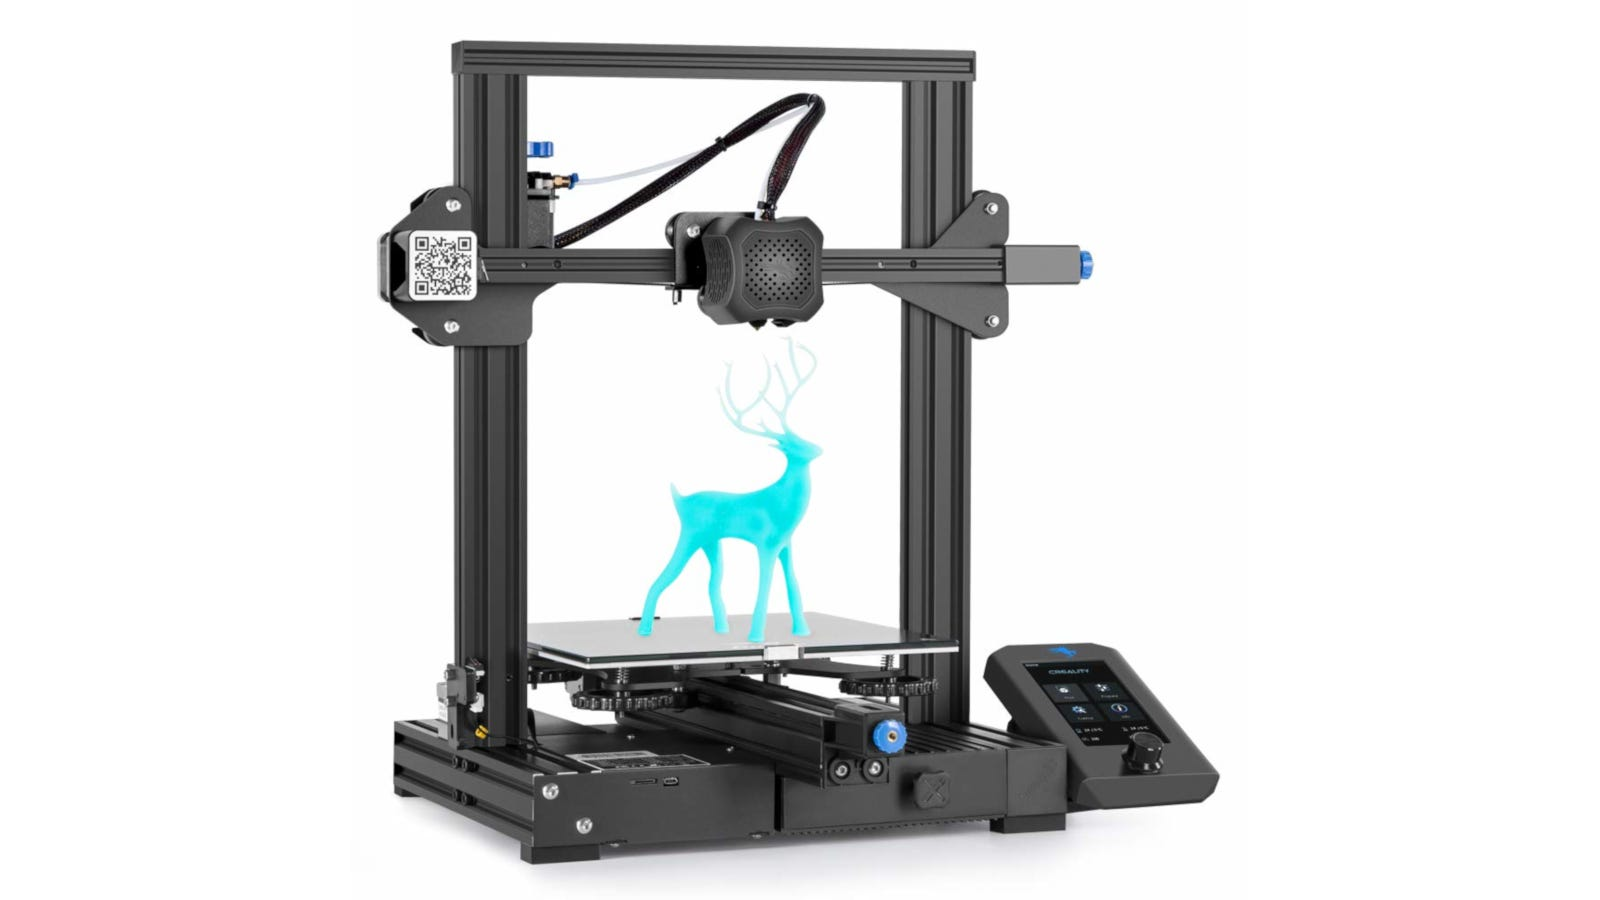 FFF 3D printer with blue stag printed on the center plate.